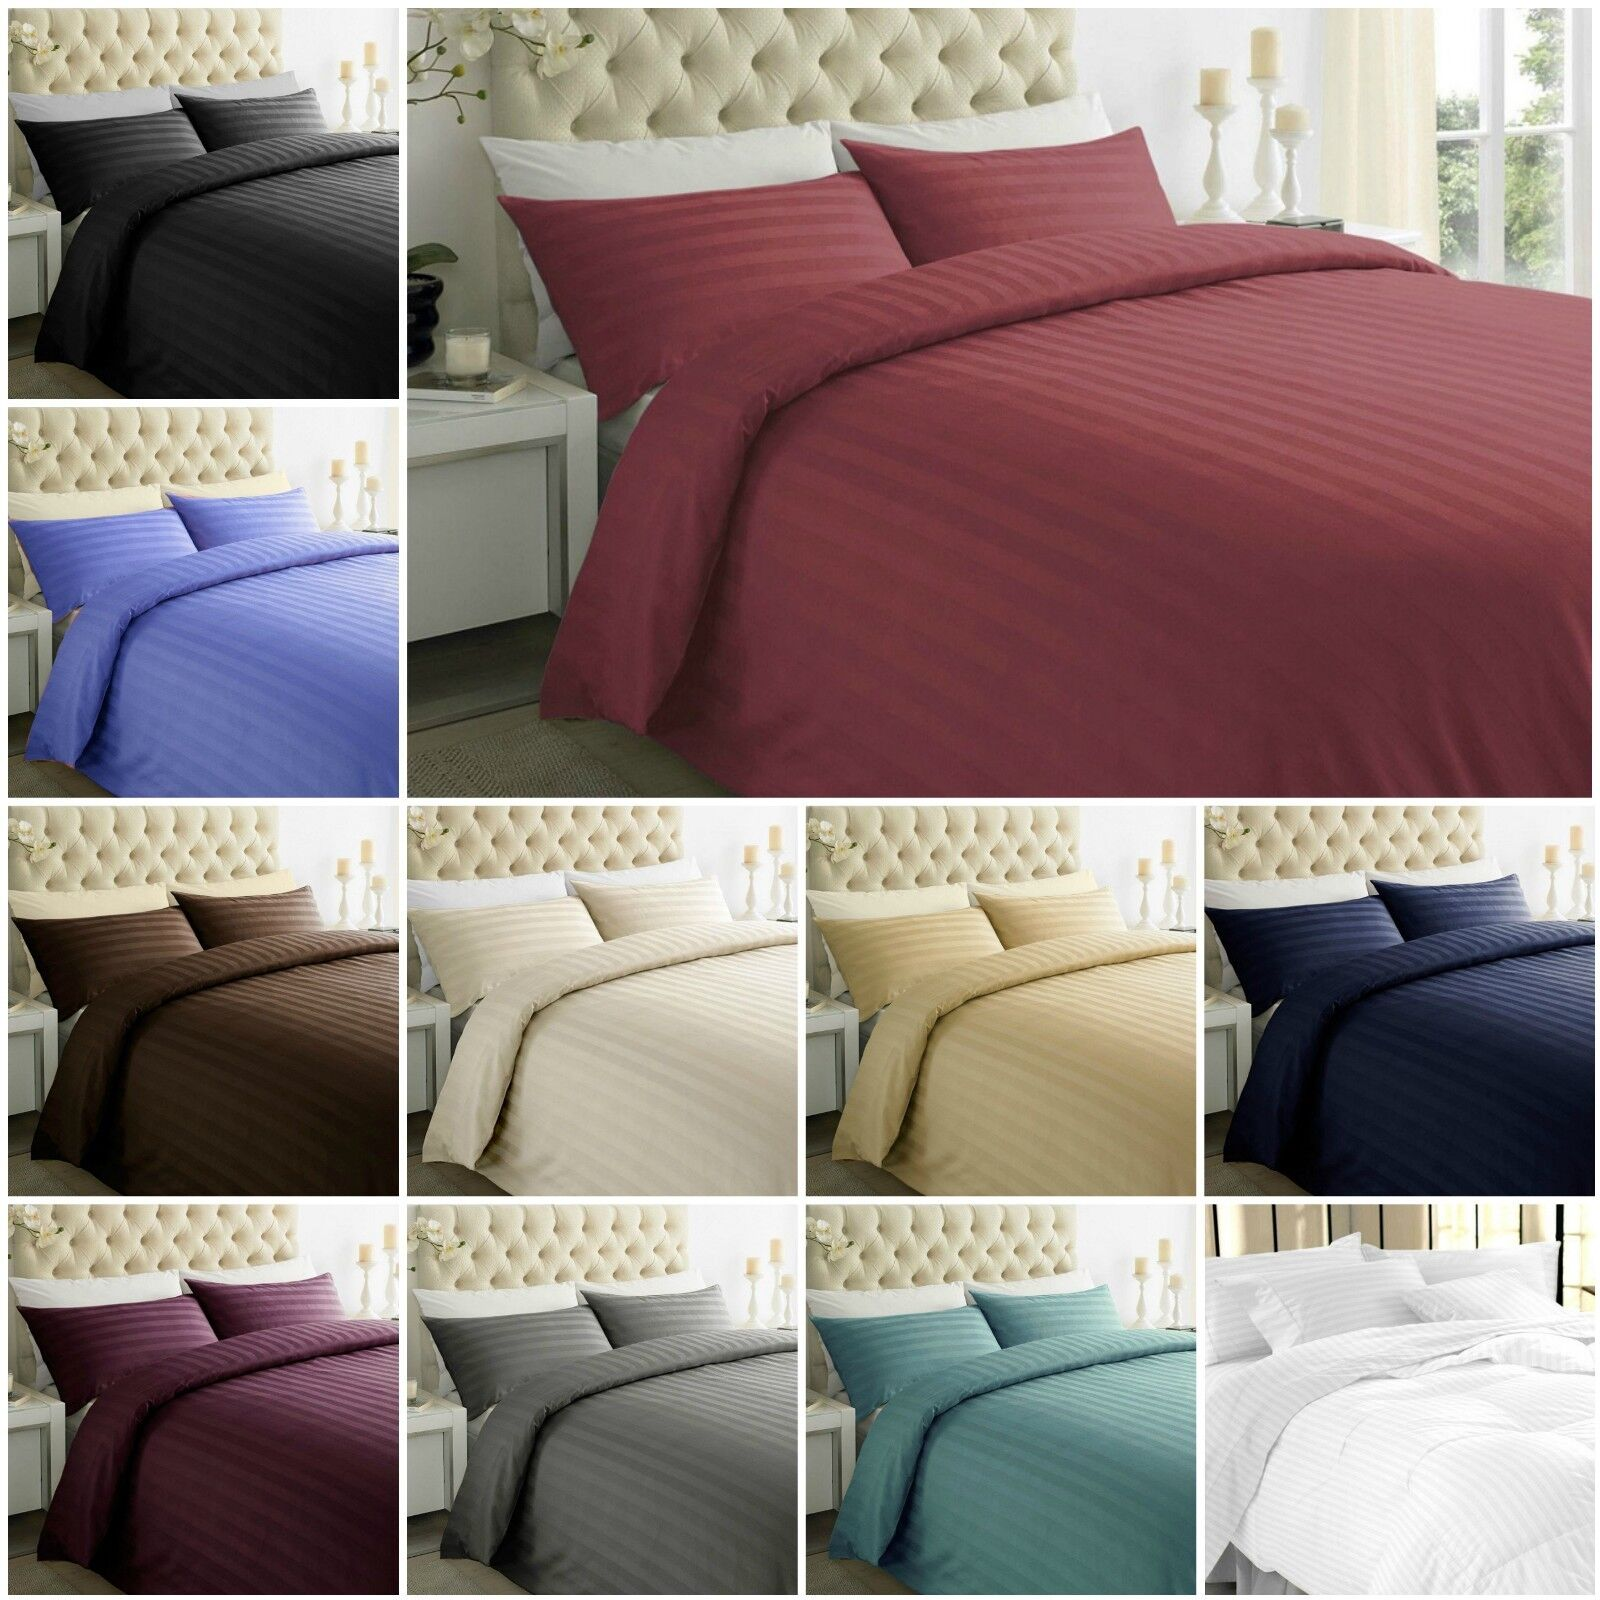 T-200 Egyptian Cotton Fitted,Flat,Valance sheet Bed Sheet Pillow Case S,D,K,S.k